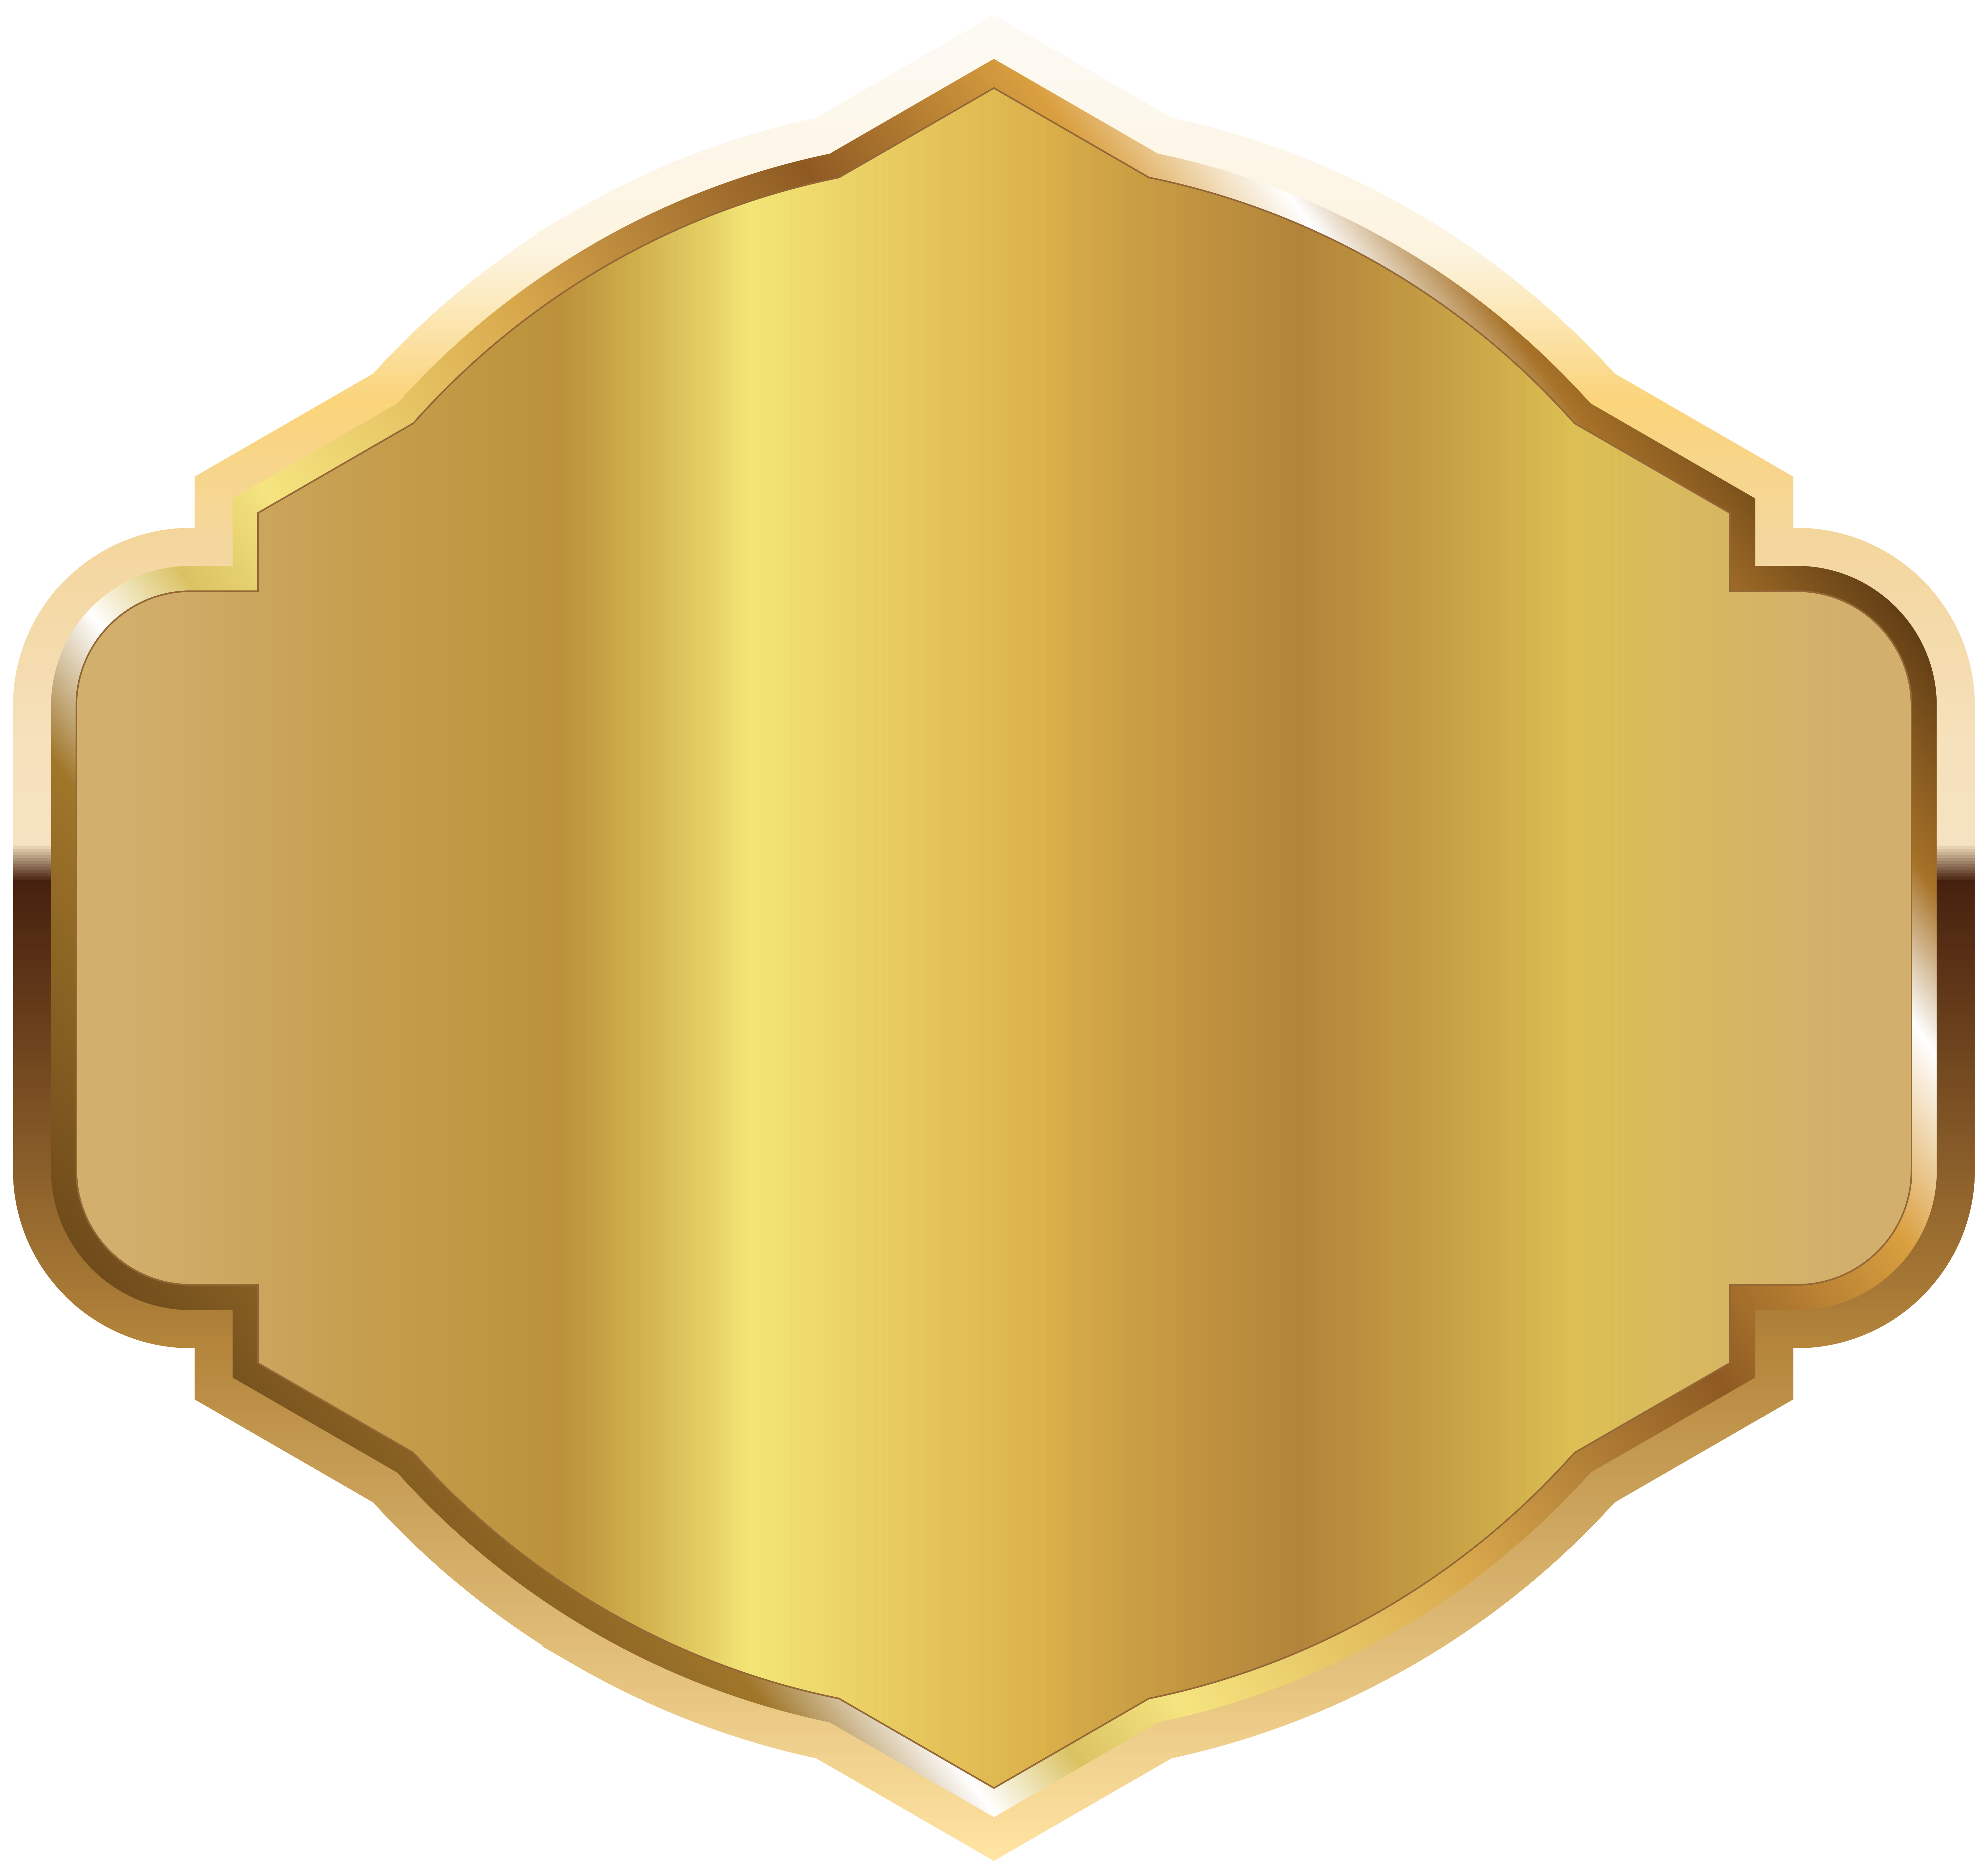 Plaque clipart yellow label. Golden template png image